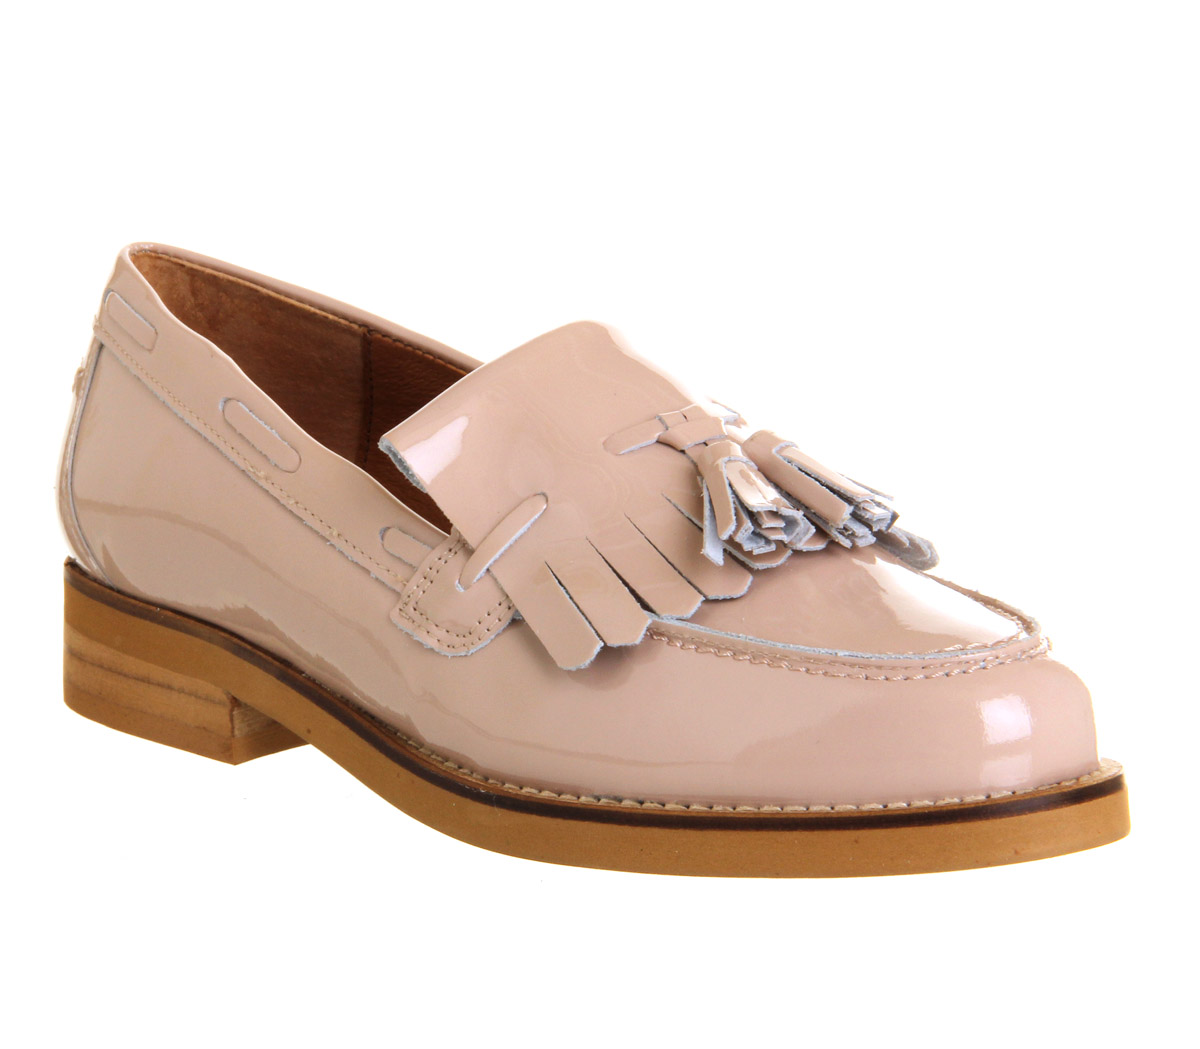 201d584f903 Womens office extravaganza loafers nude patent leather flats ebay jpg  1200x1049 Tan womens loafers